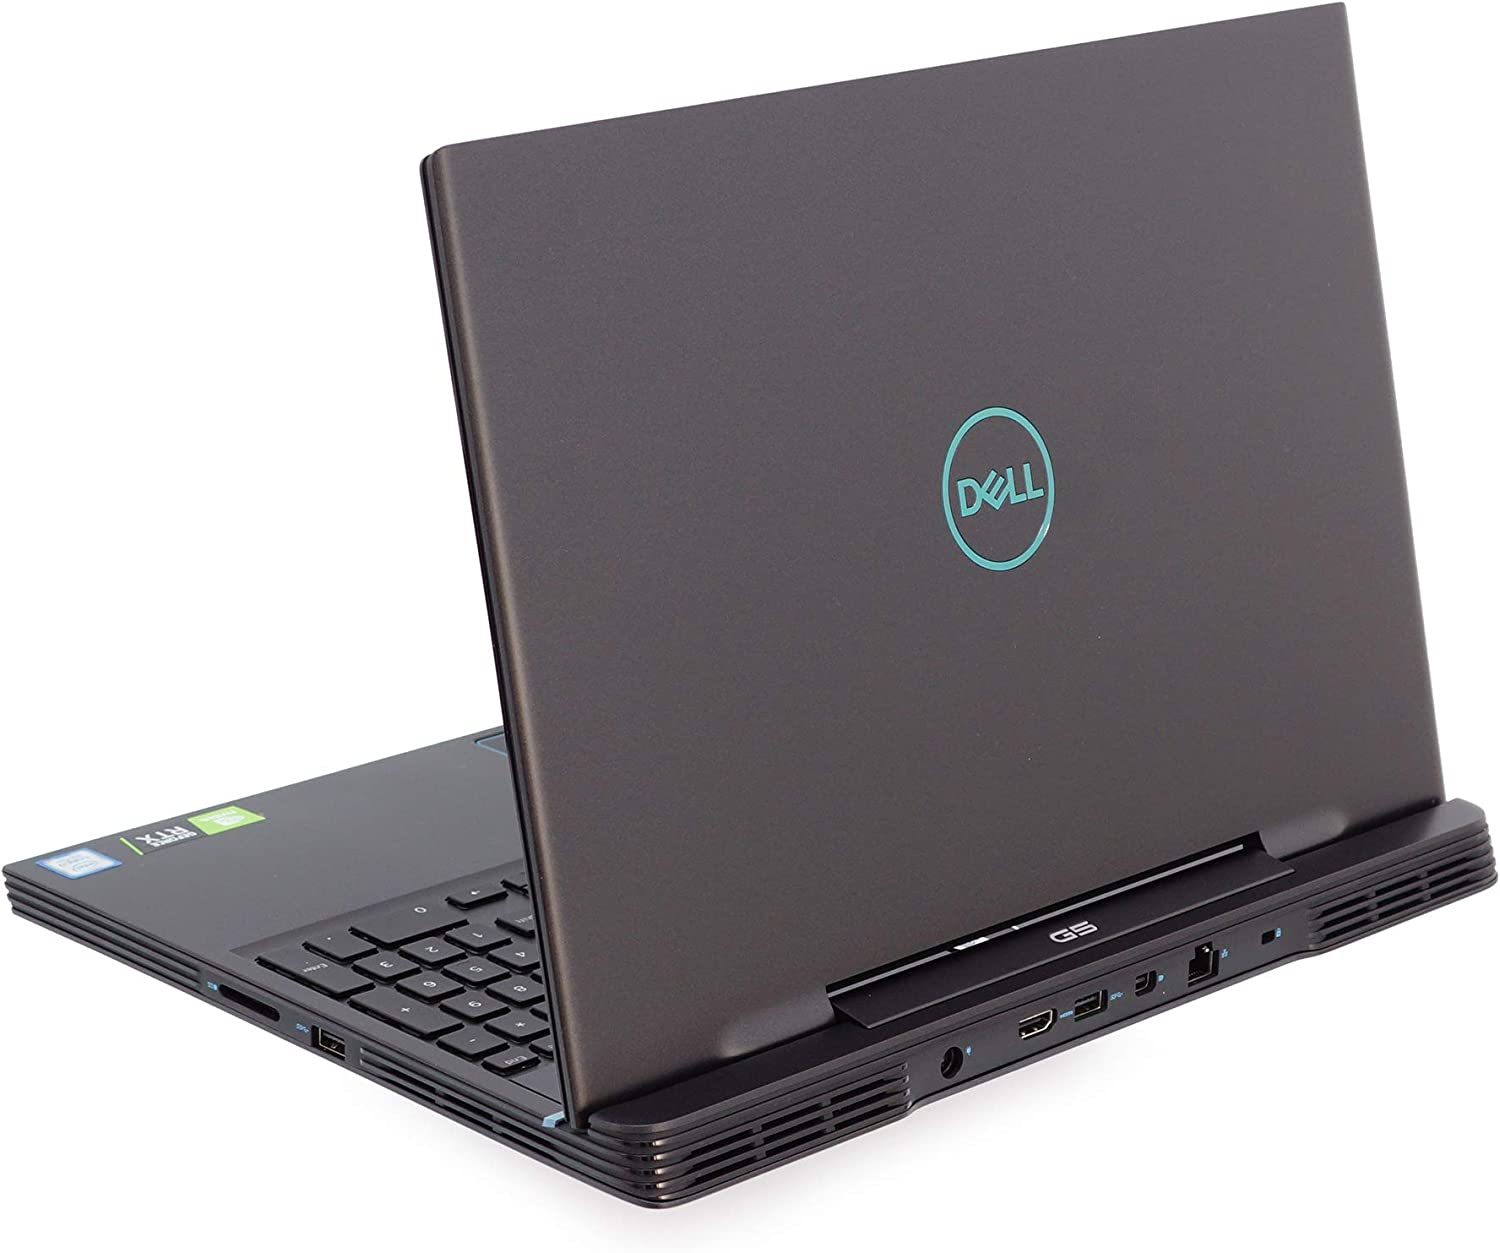 "Dell G5 15 5590 Gaming Laptop: Core i7-9750H, NVidia RTX 2060, 15.6"" Full HD 144Hz IPS Display, 16GB RAM, 512GB SSD"